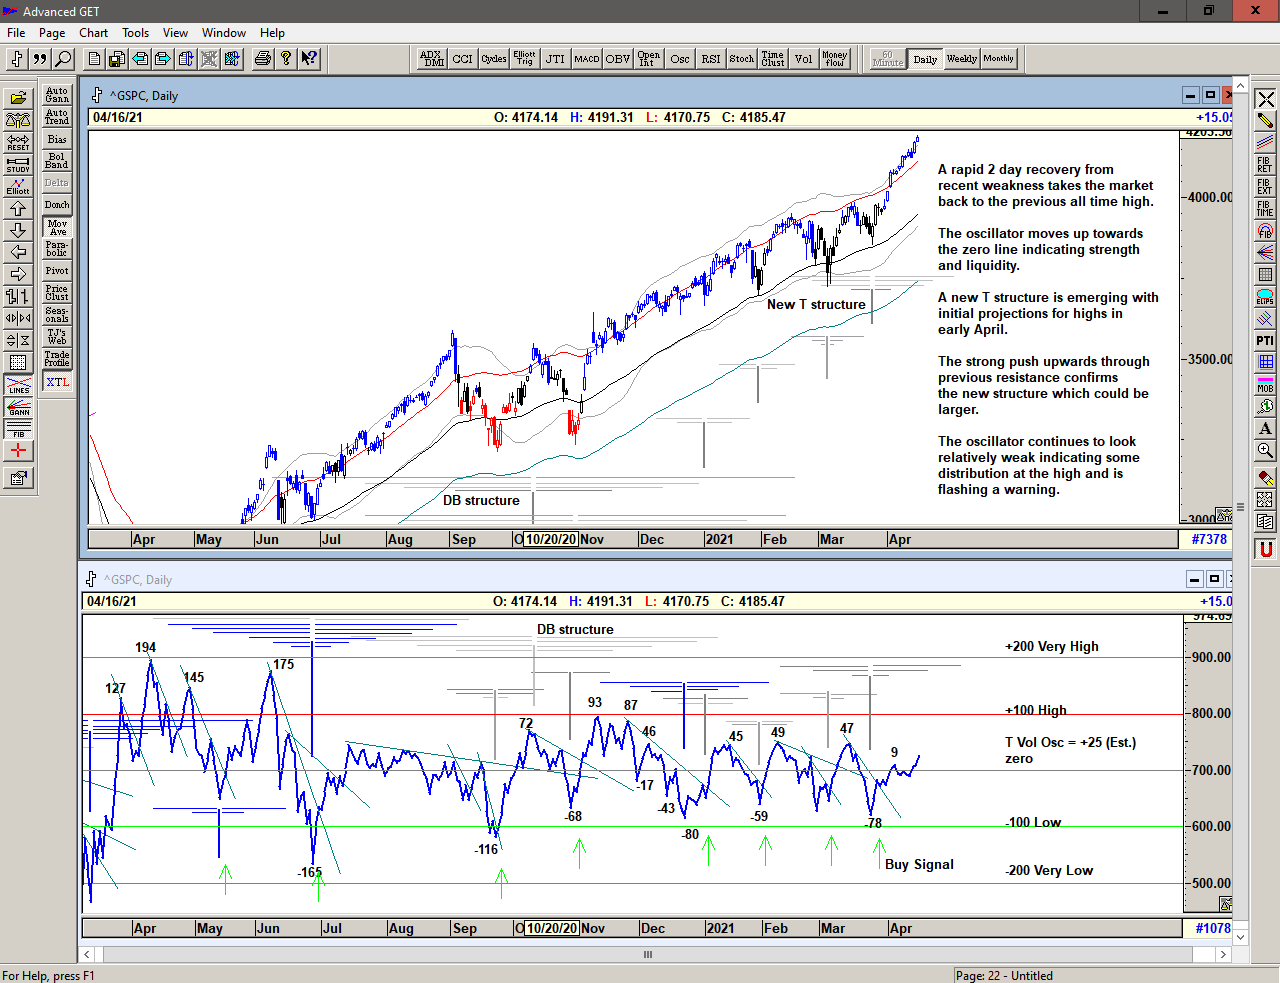 Chart of S&P 500 with T volume oscillator for 19 April 2021